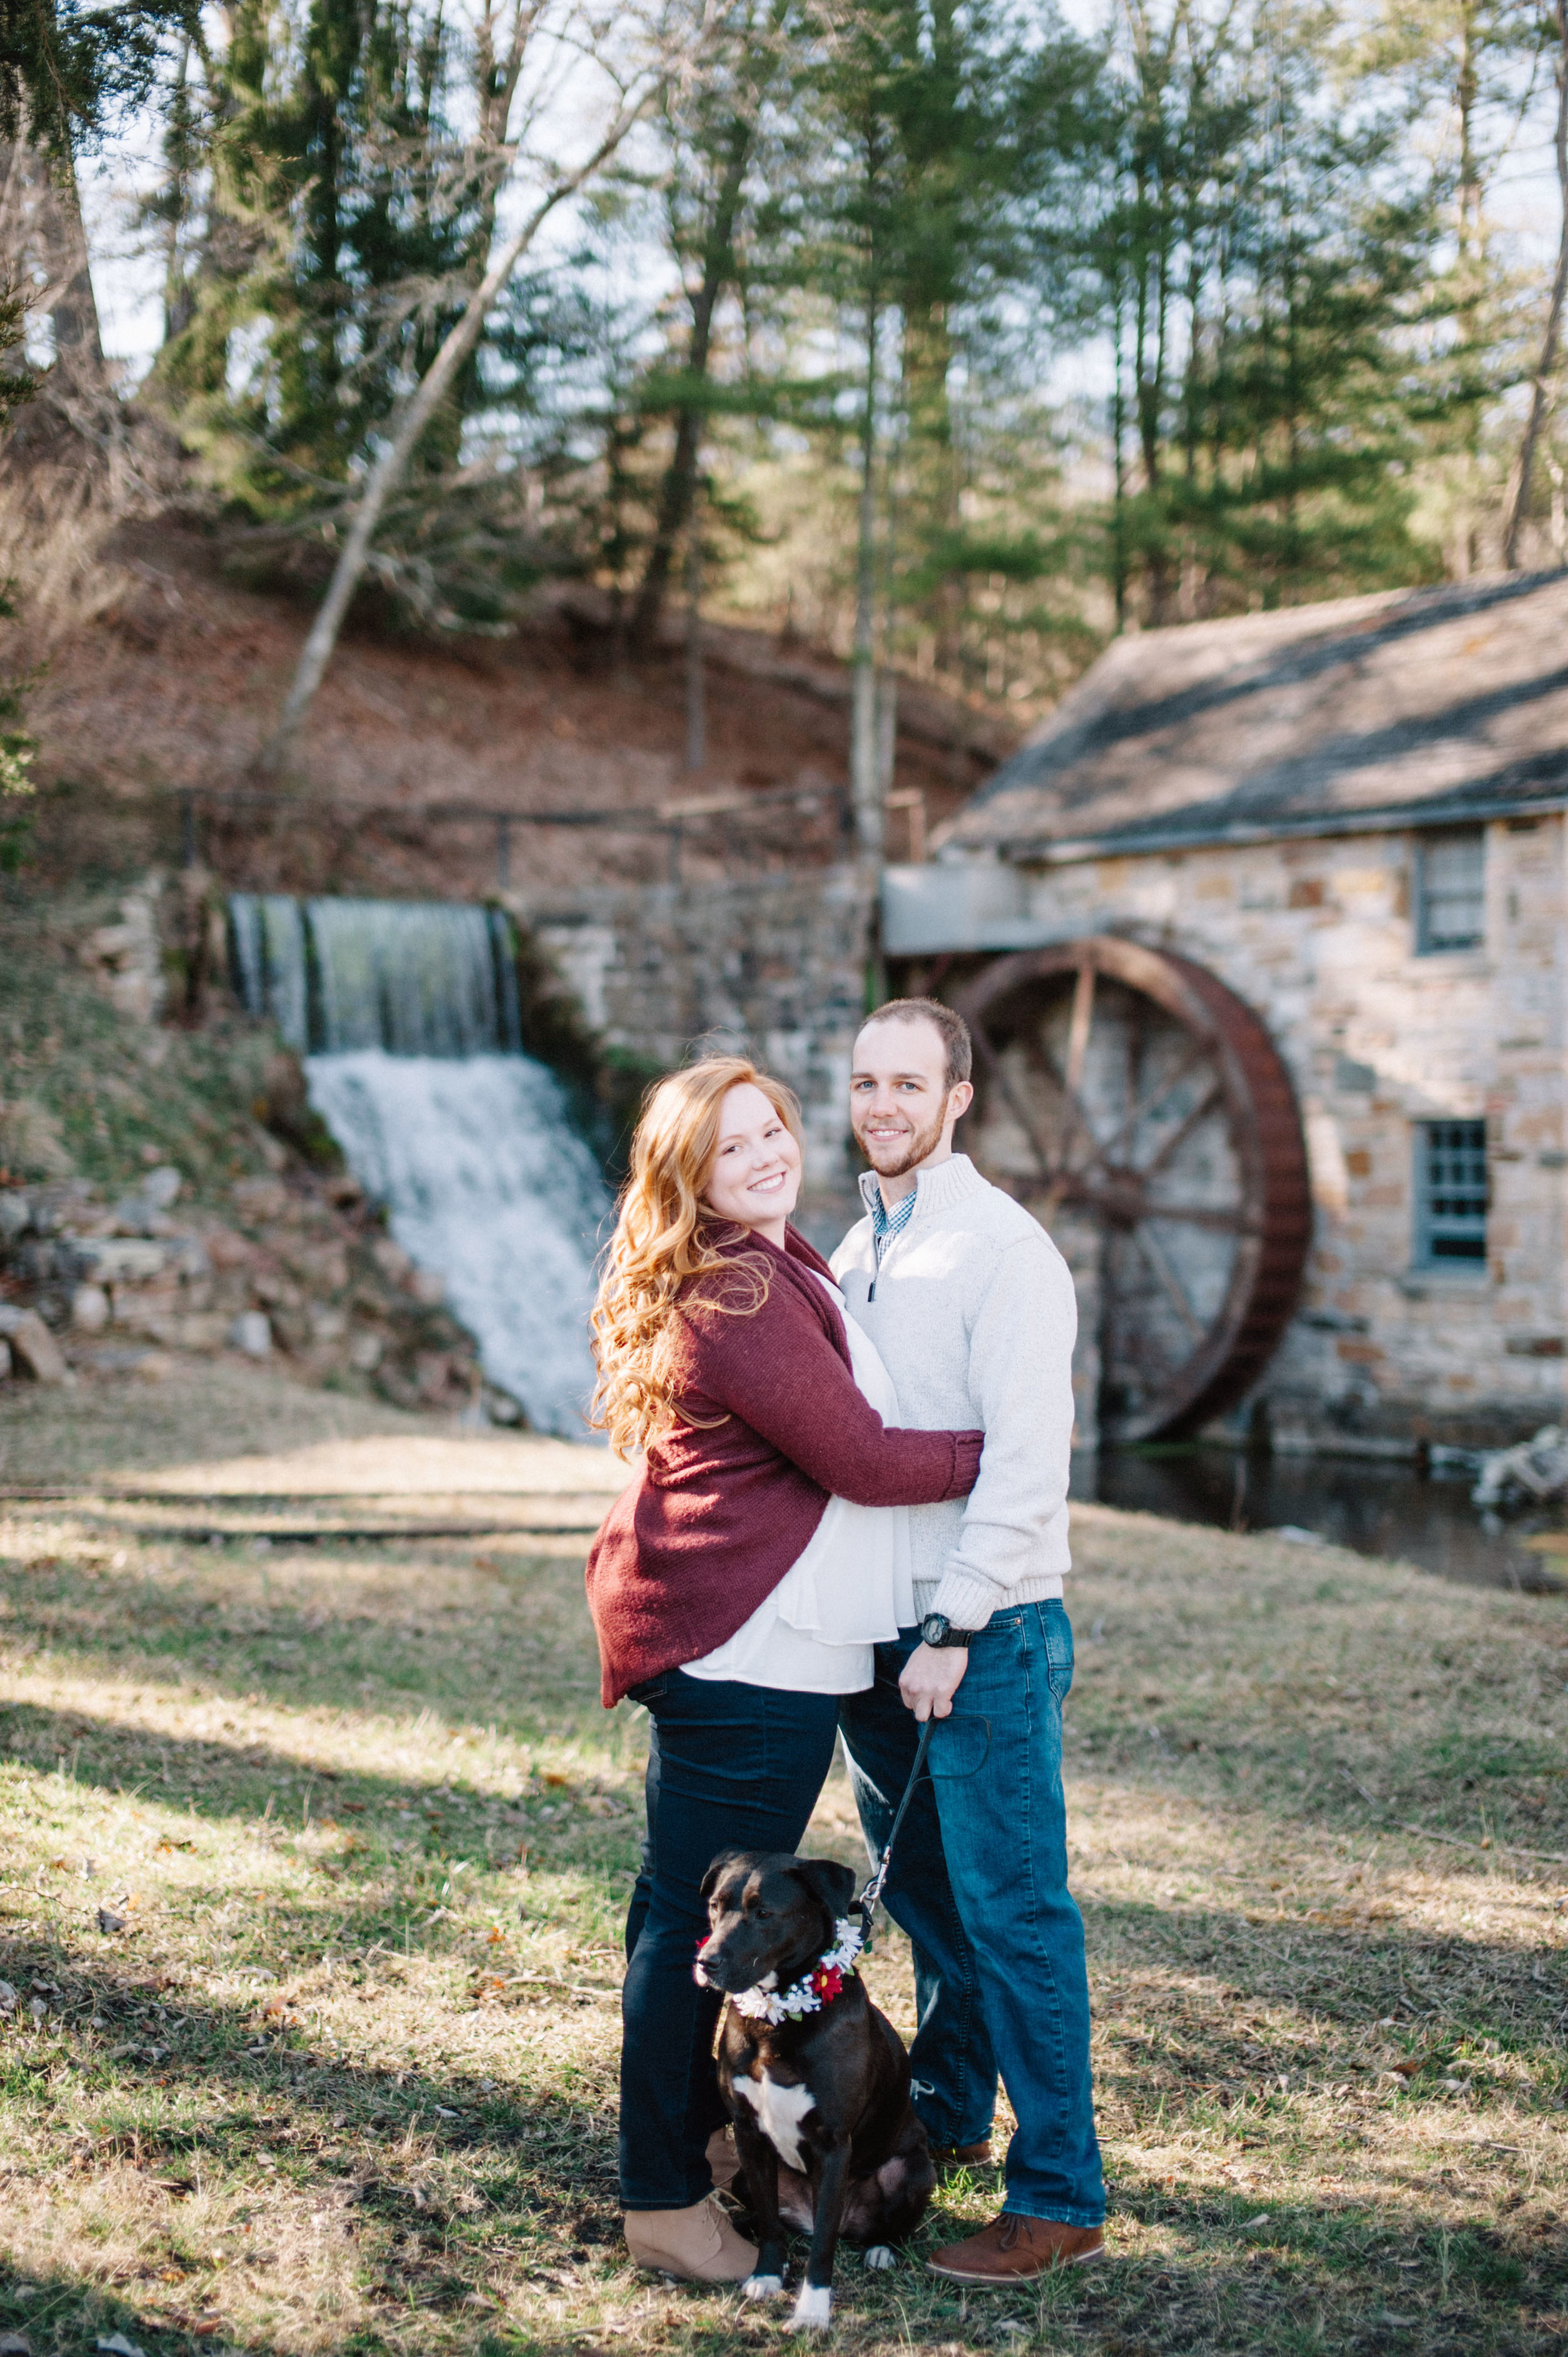 edinburgvirginiaweddingphotographer